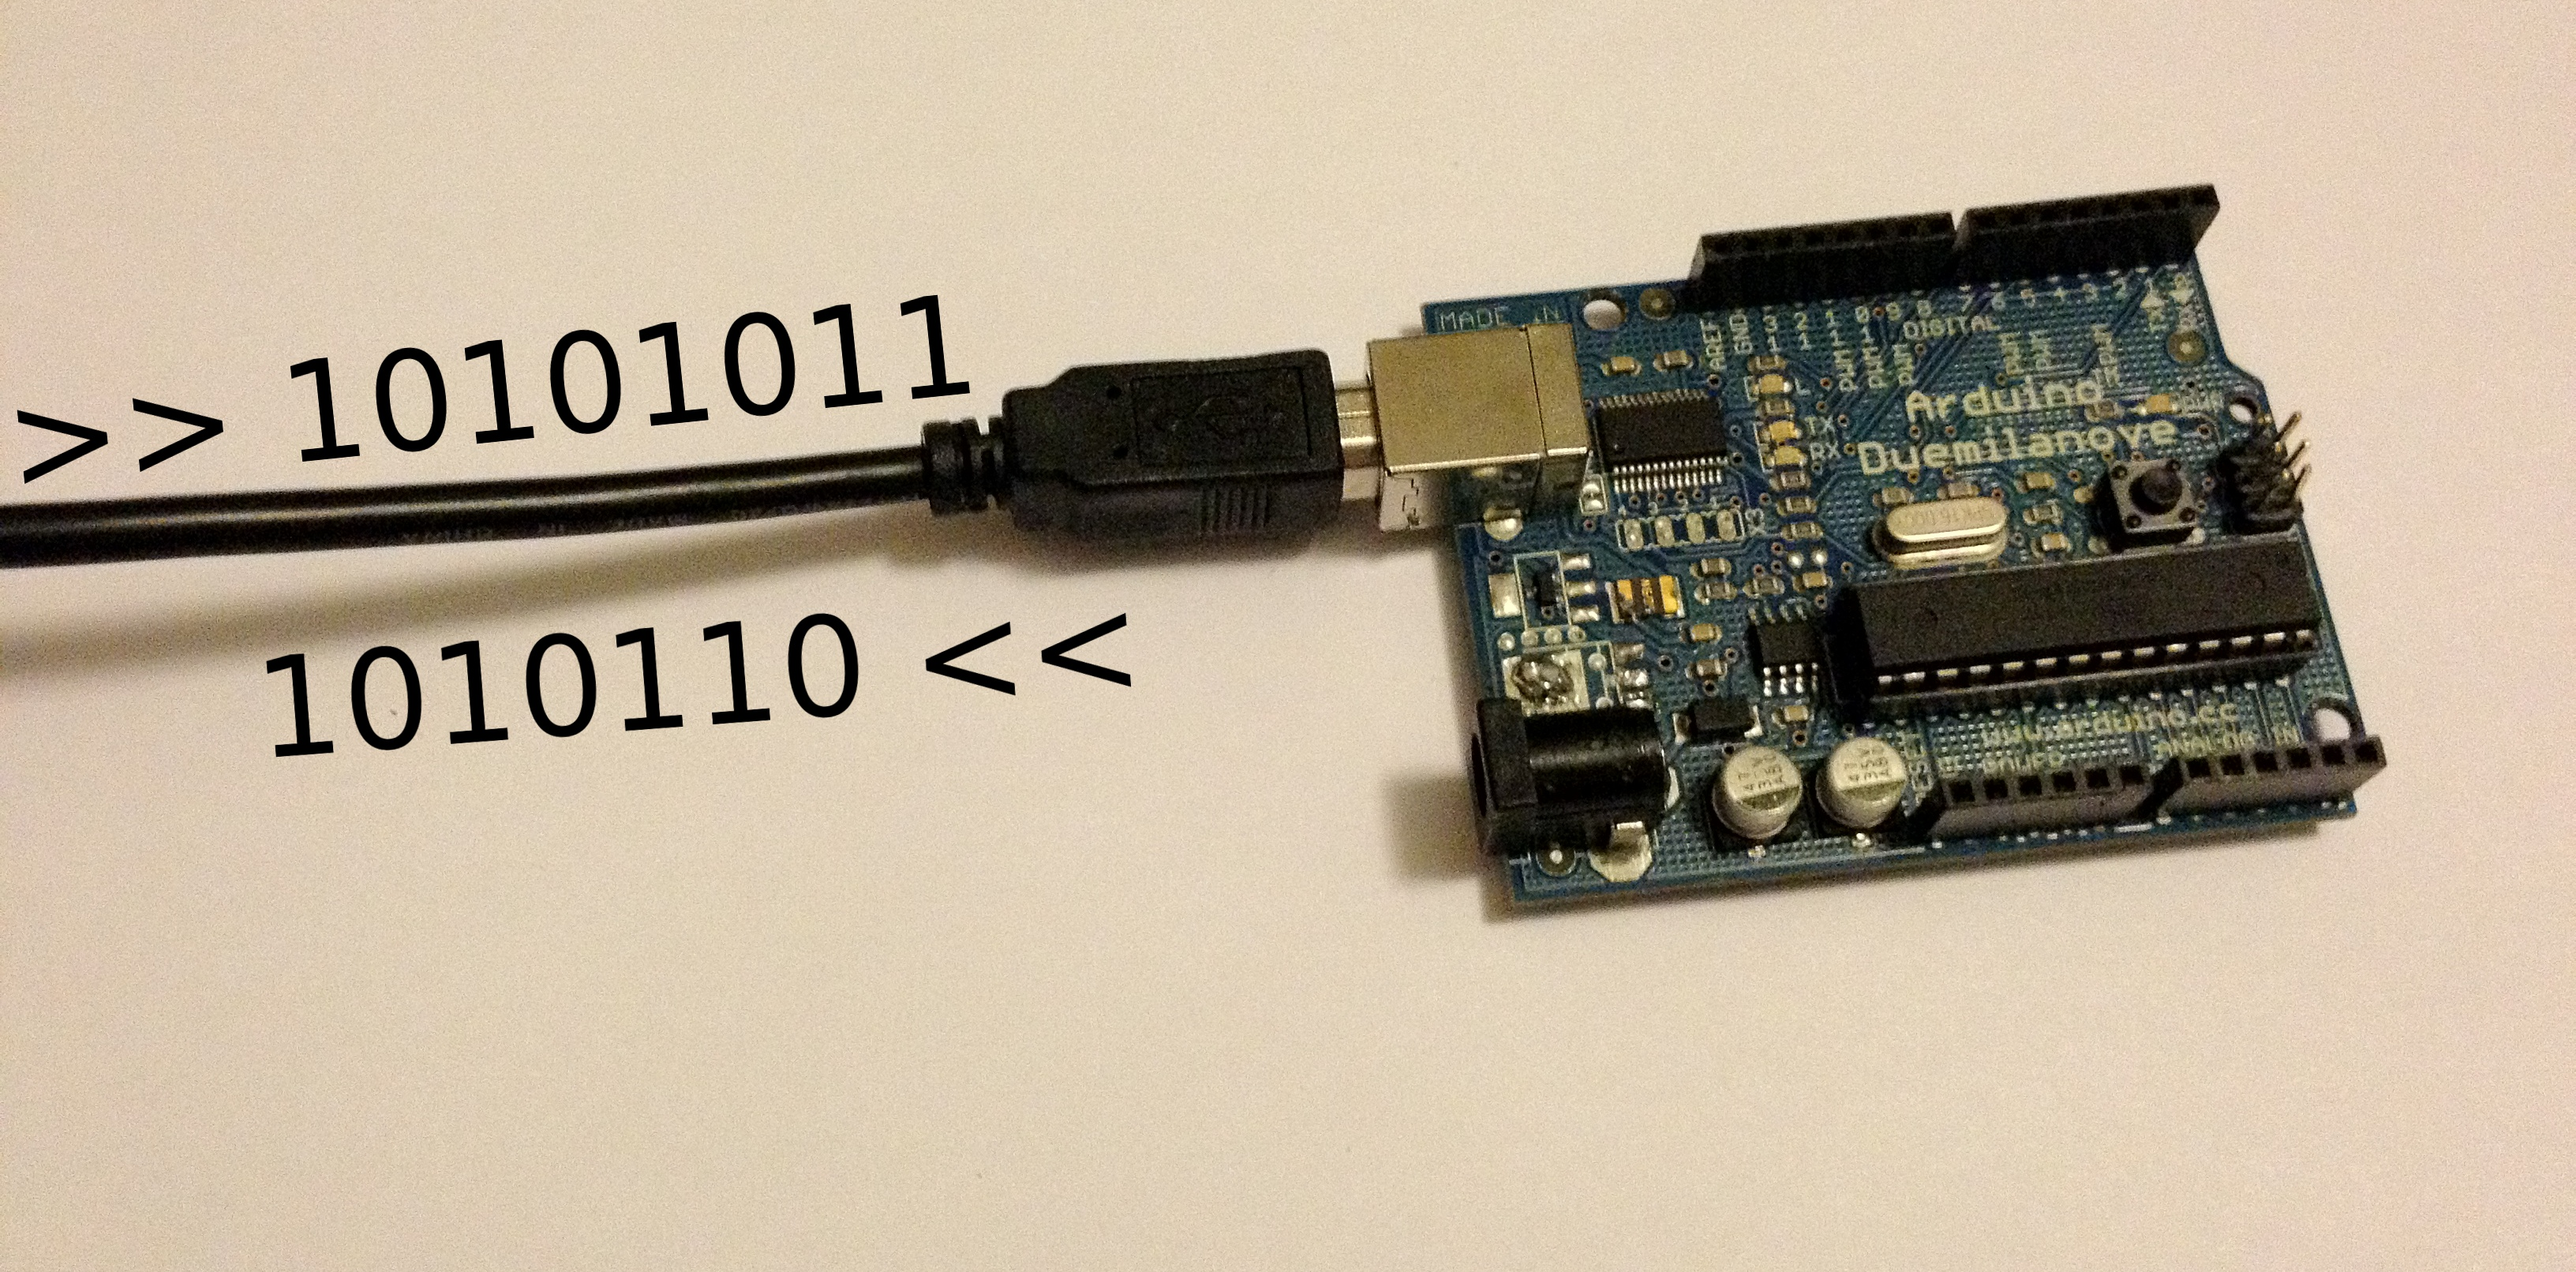 Graphing on an Arduino, the EASY WAY!